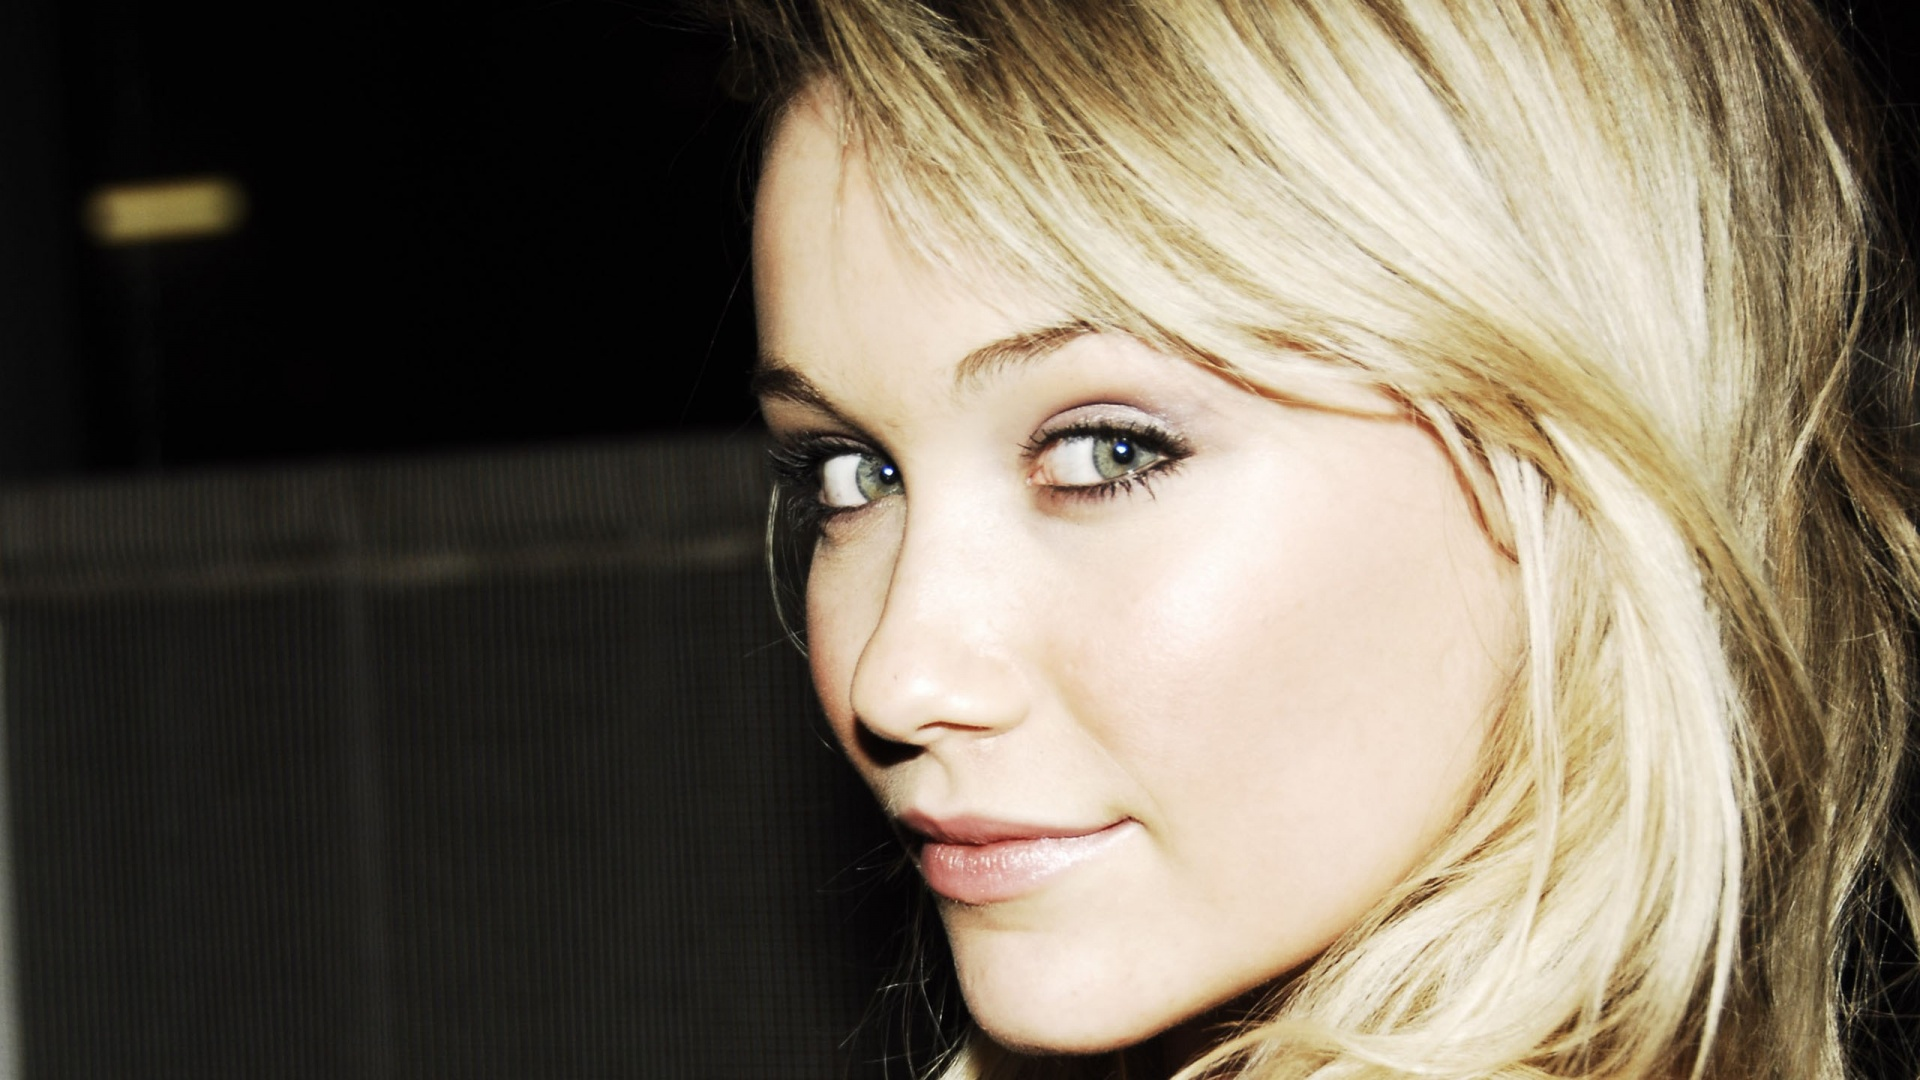 Fall Out Boy Wallpapers 2015 Katrina Bowden Wallpapers High Quality Download Free